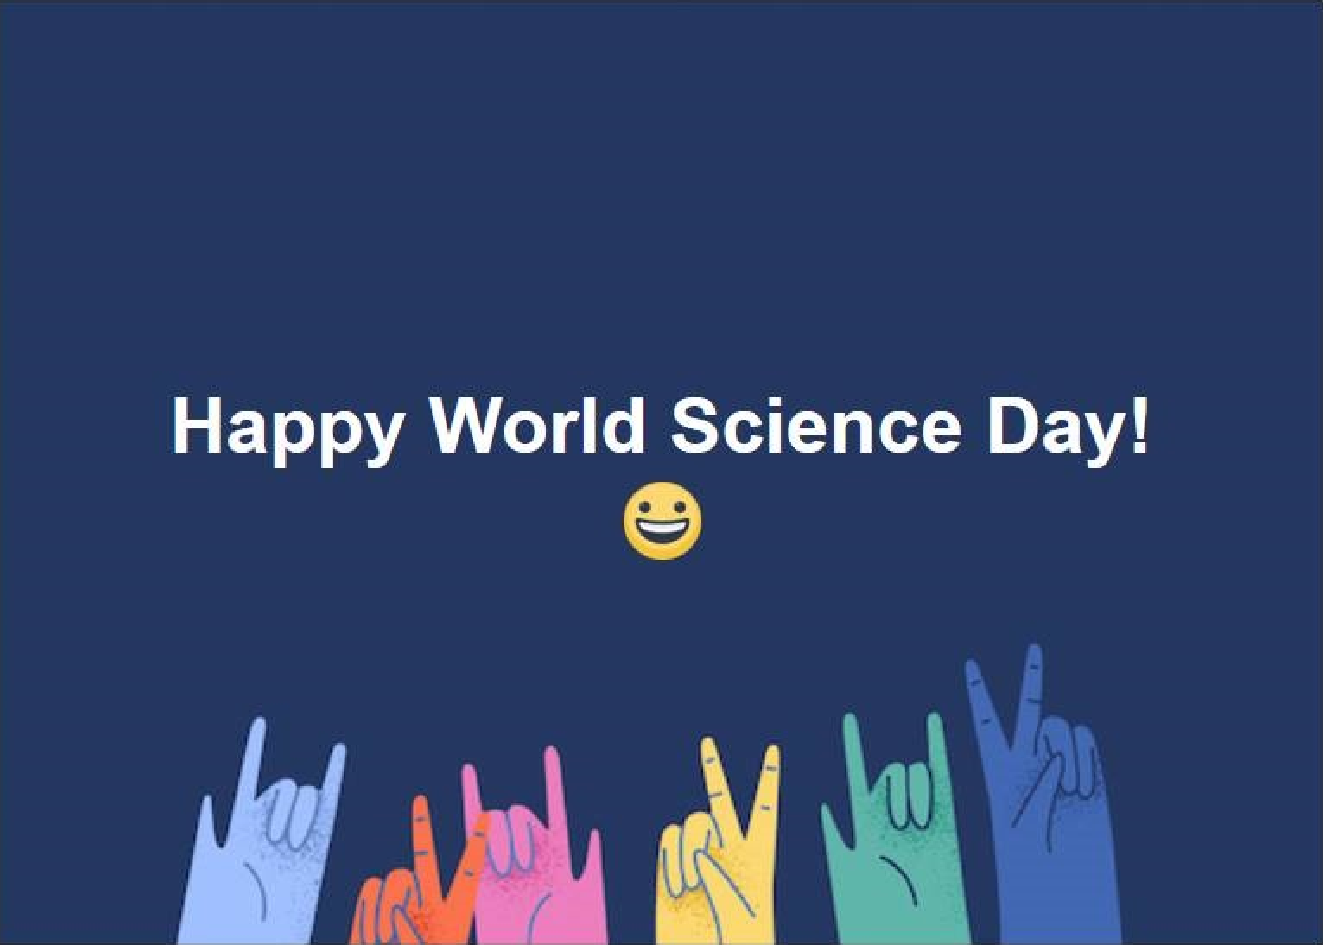 Happy World Science Day - 9 Nov 2017